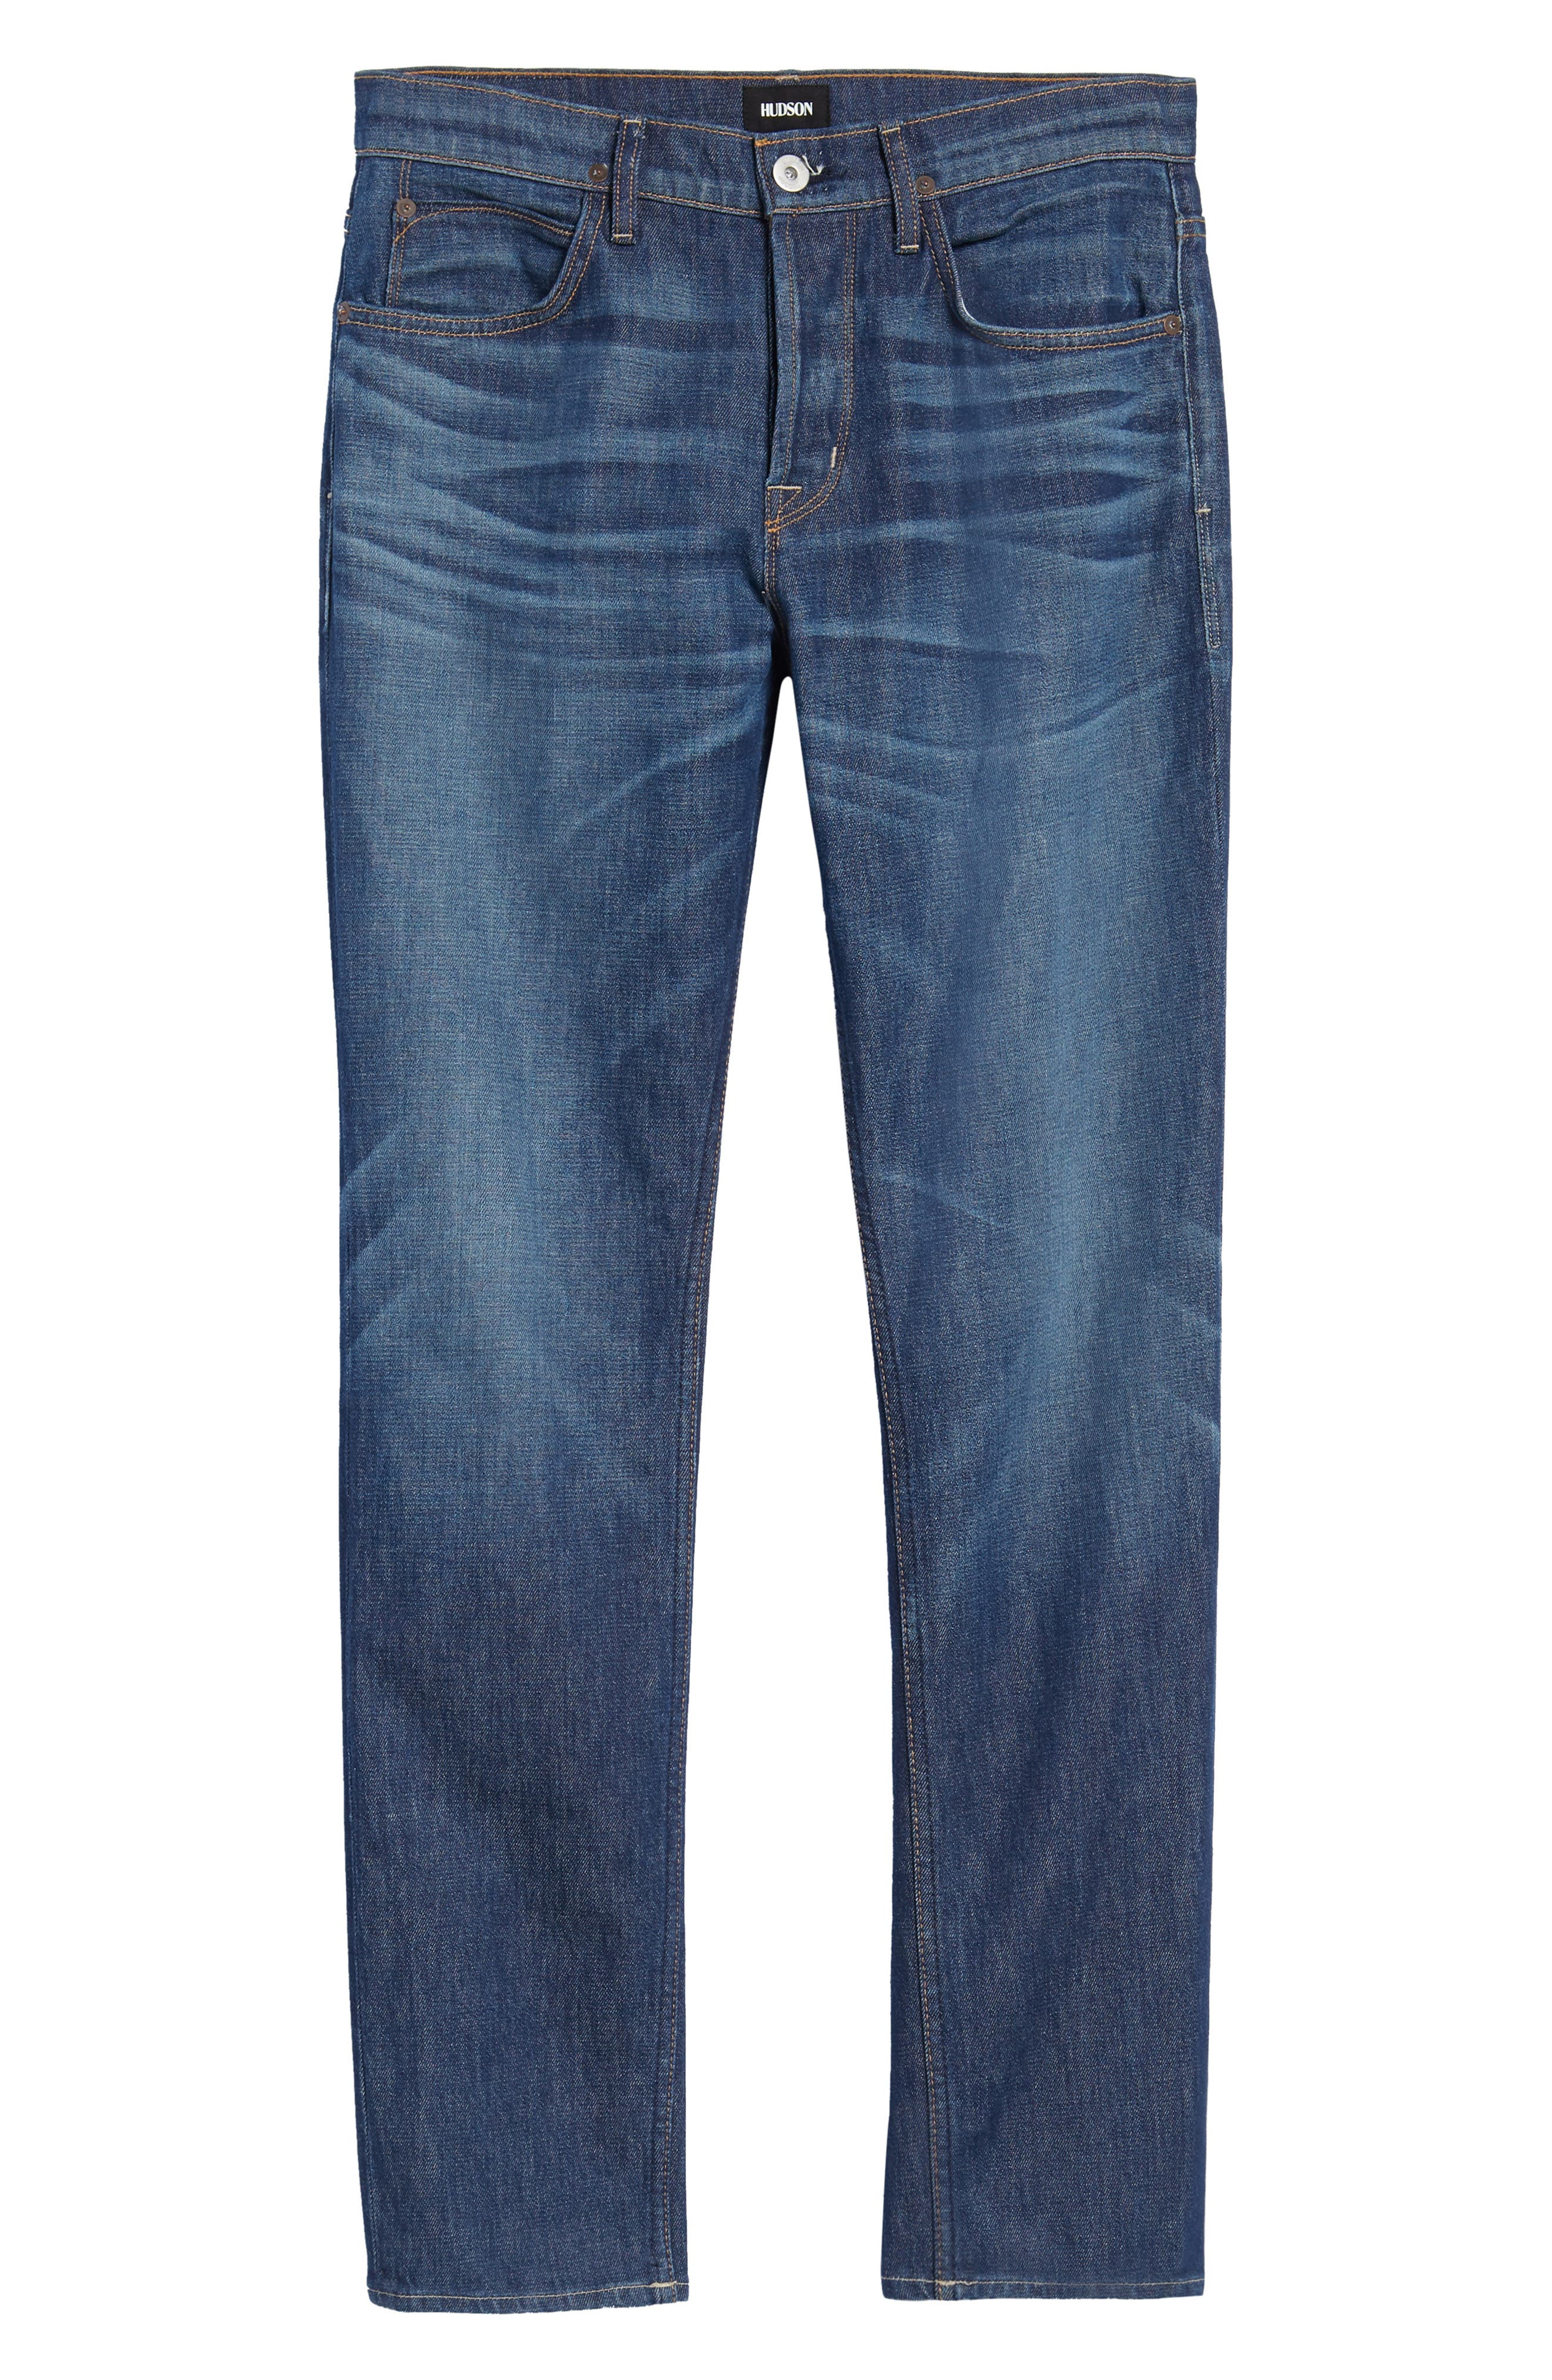 Axl Skinny Fit Jeans,                             Alternate thumbnail 6, color,                             425